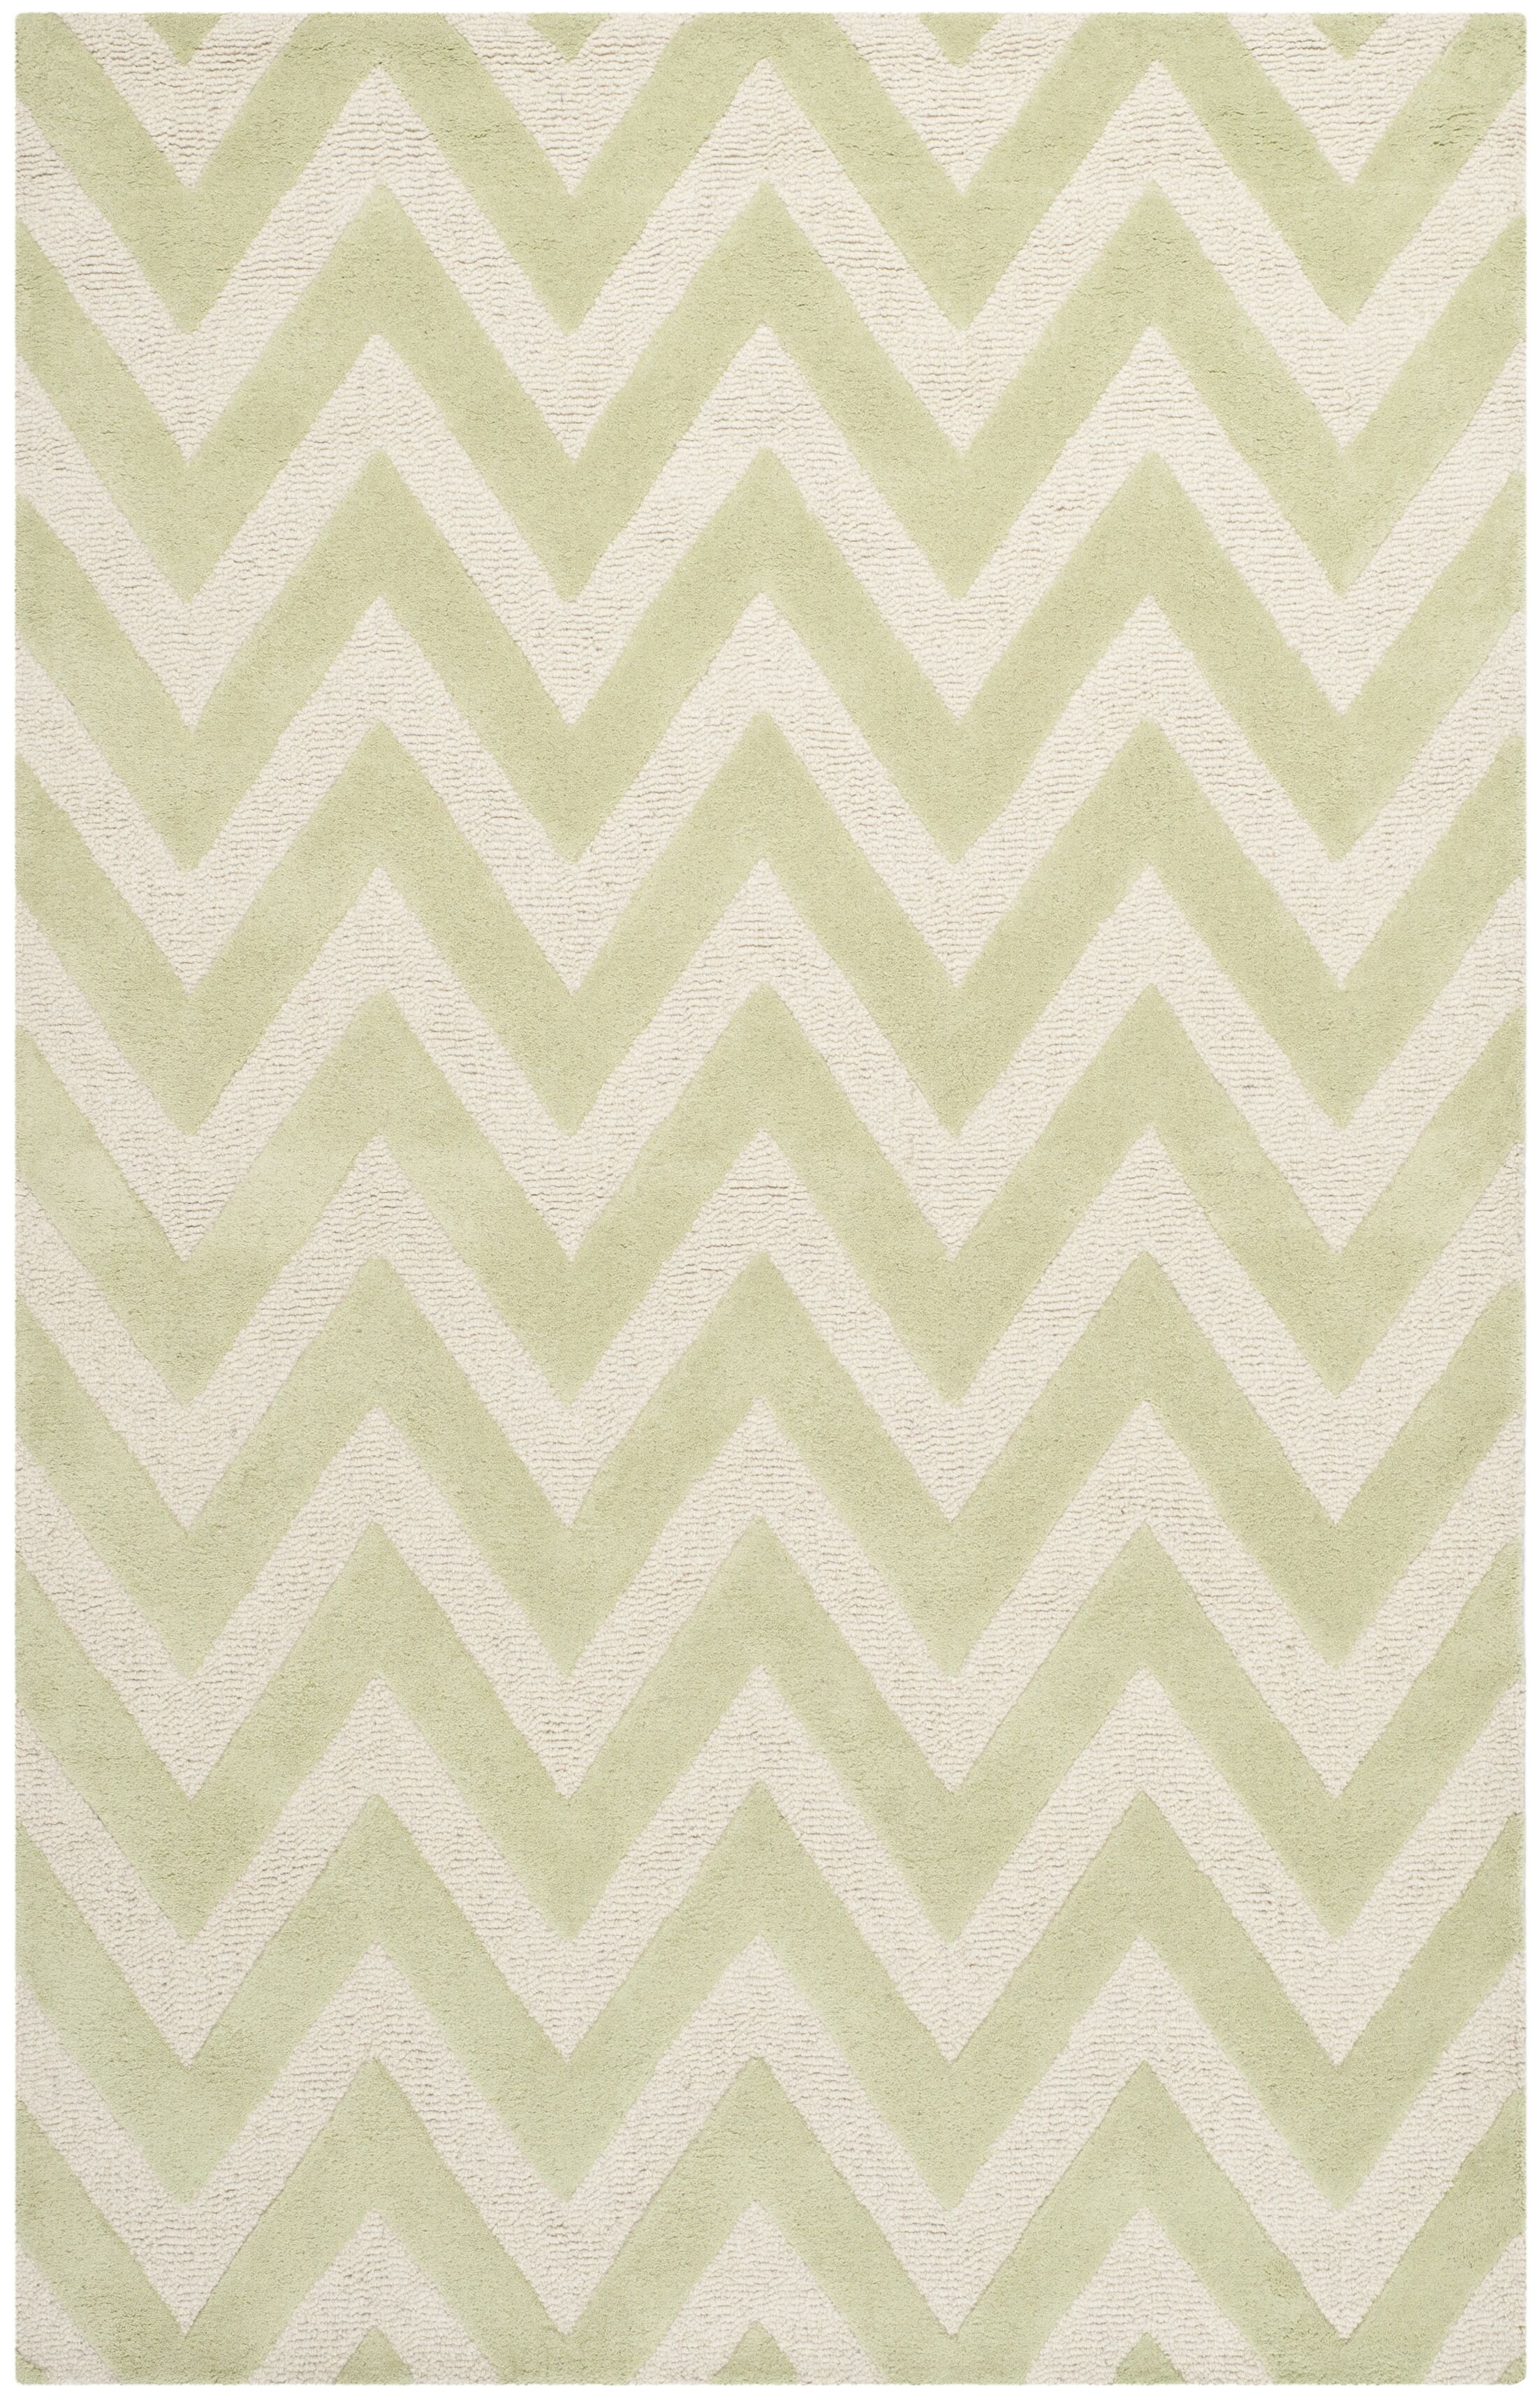 Charlenne Hand-Tufted Light Green/Ivory Area Rug Rug Size: Rectangle 6' x 9'